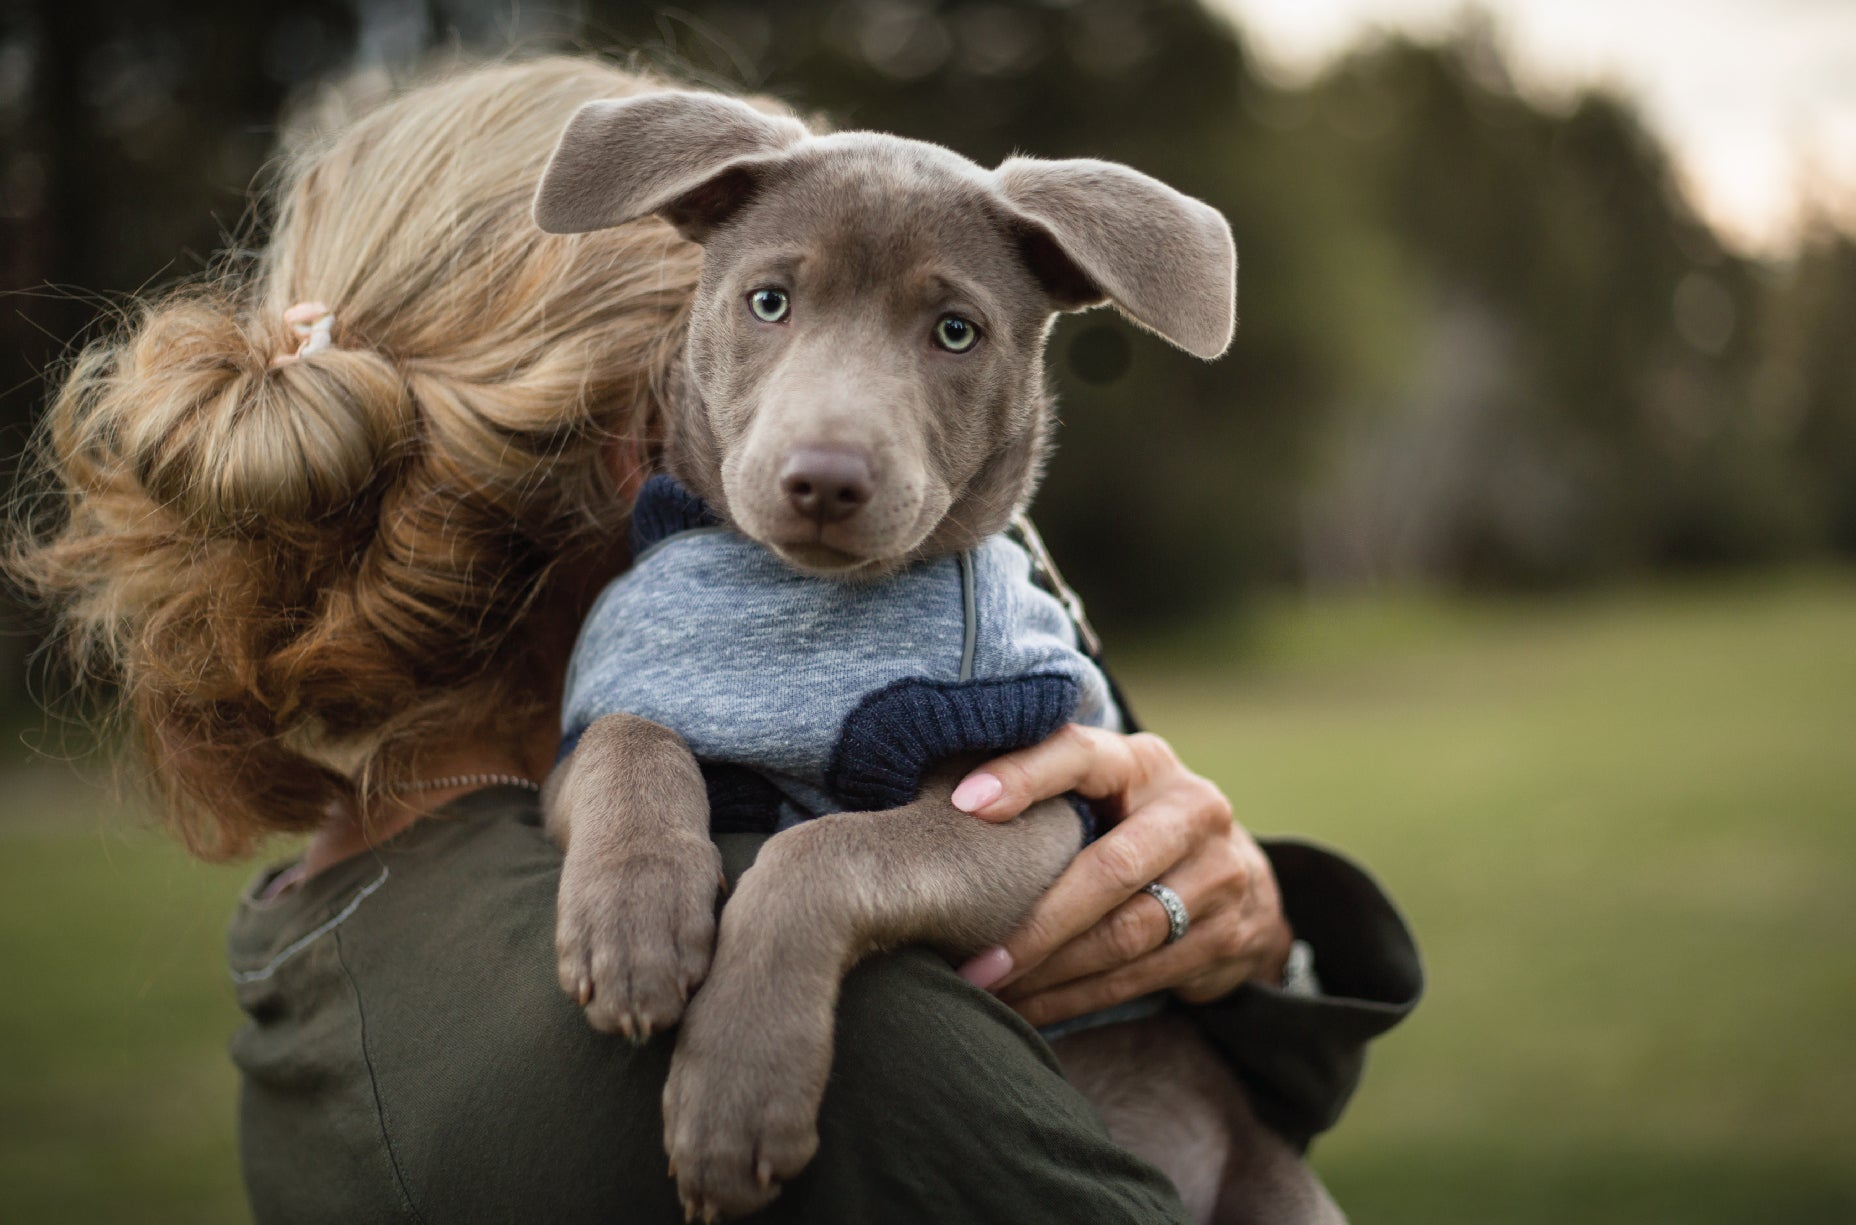 Cute puppy looking into camera whilst being cuddled by owner